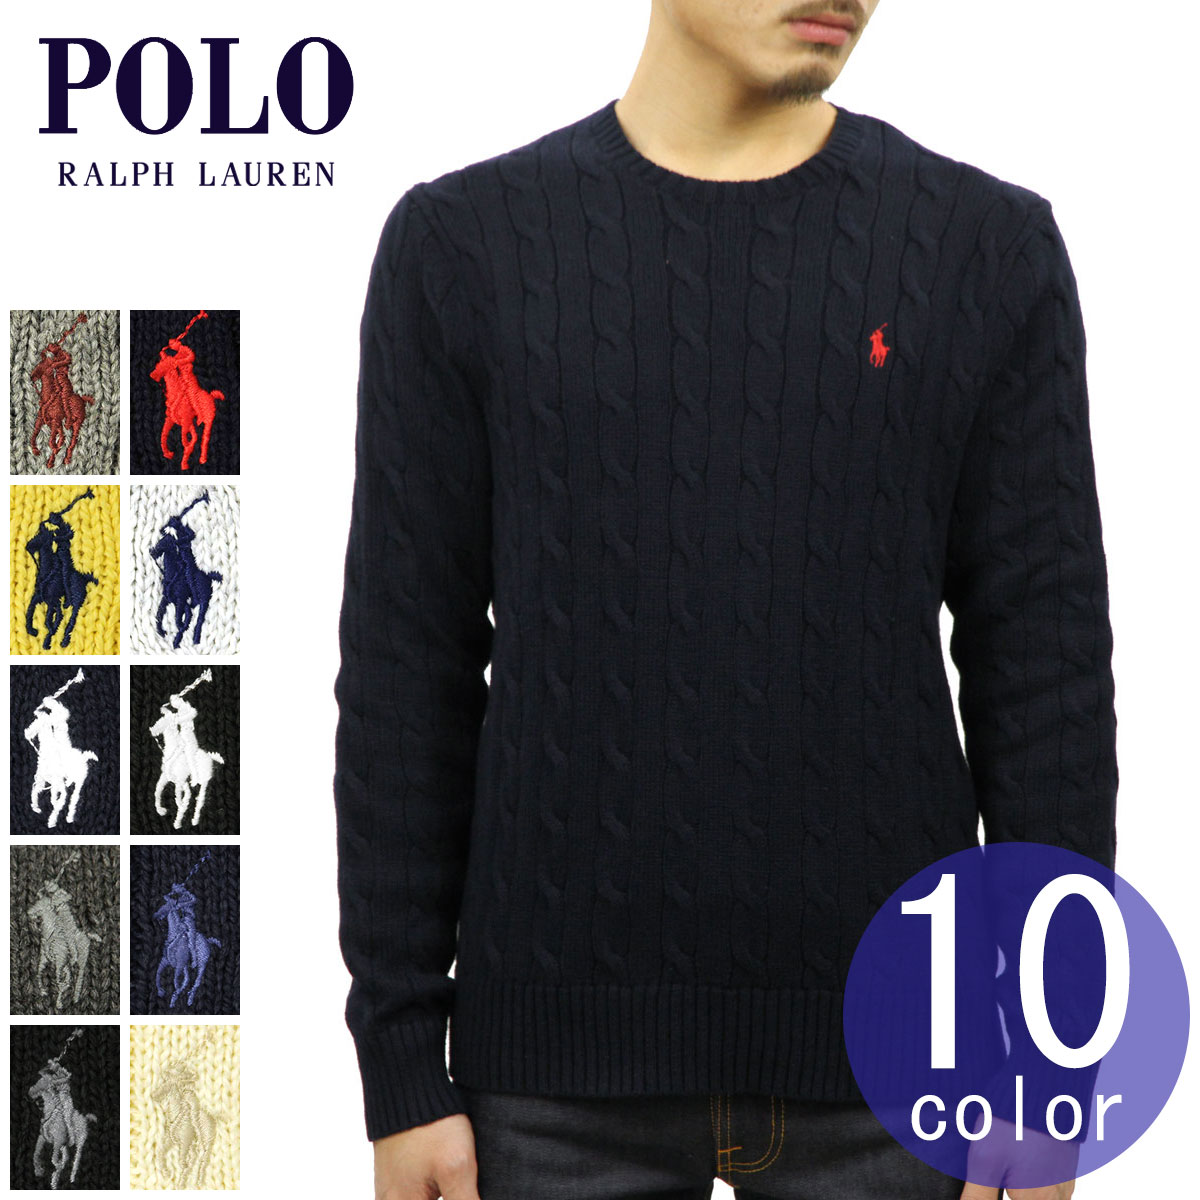 710e4f0f066cf8 Rakuten Ichiba shop MIXON: Polo Ralph Lauren POLO RALPH LAUREN regular  article men one point cotton cable knit sweater CABLE-KNIT COTTON SWEATER |  Rakuten ...